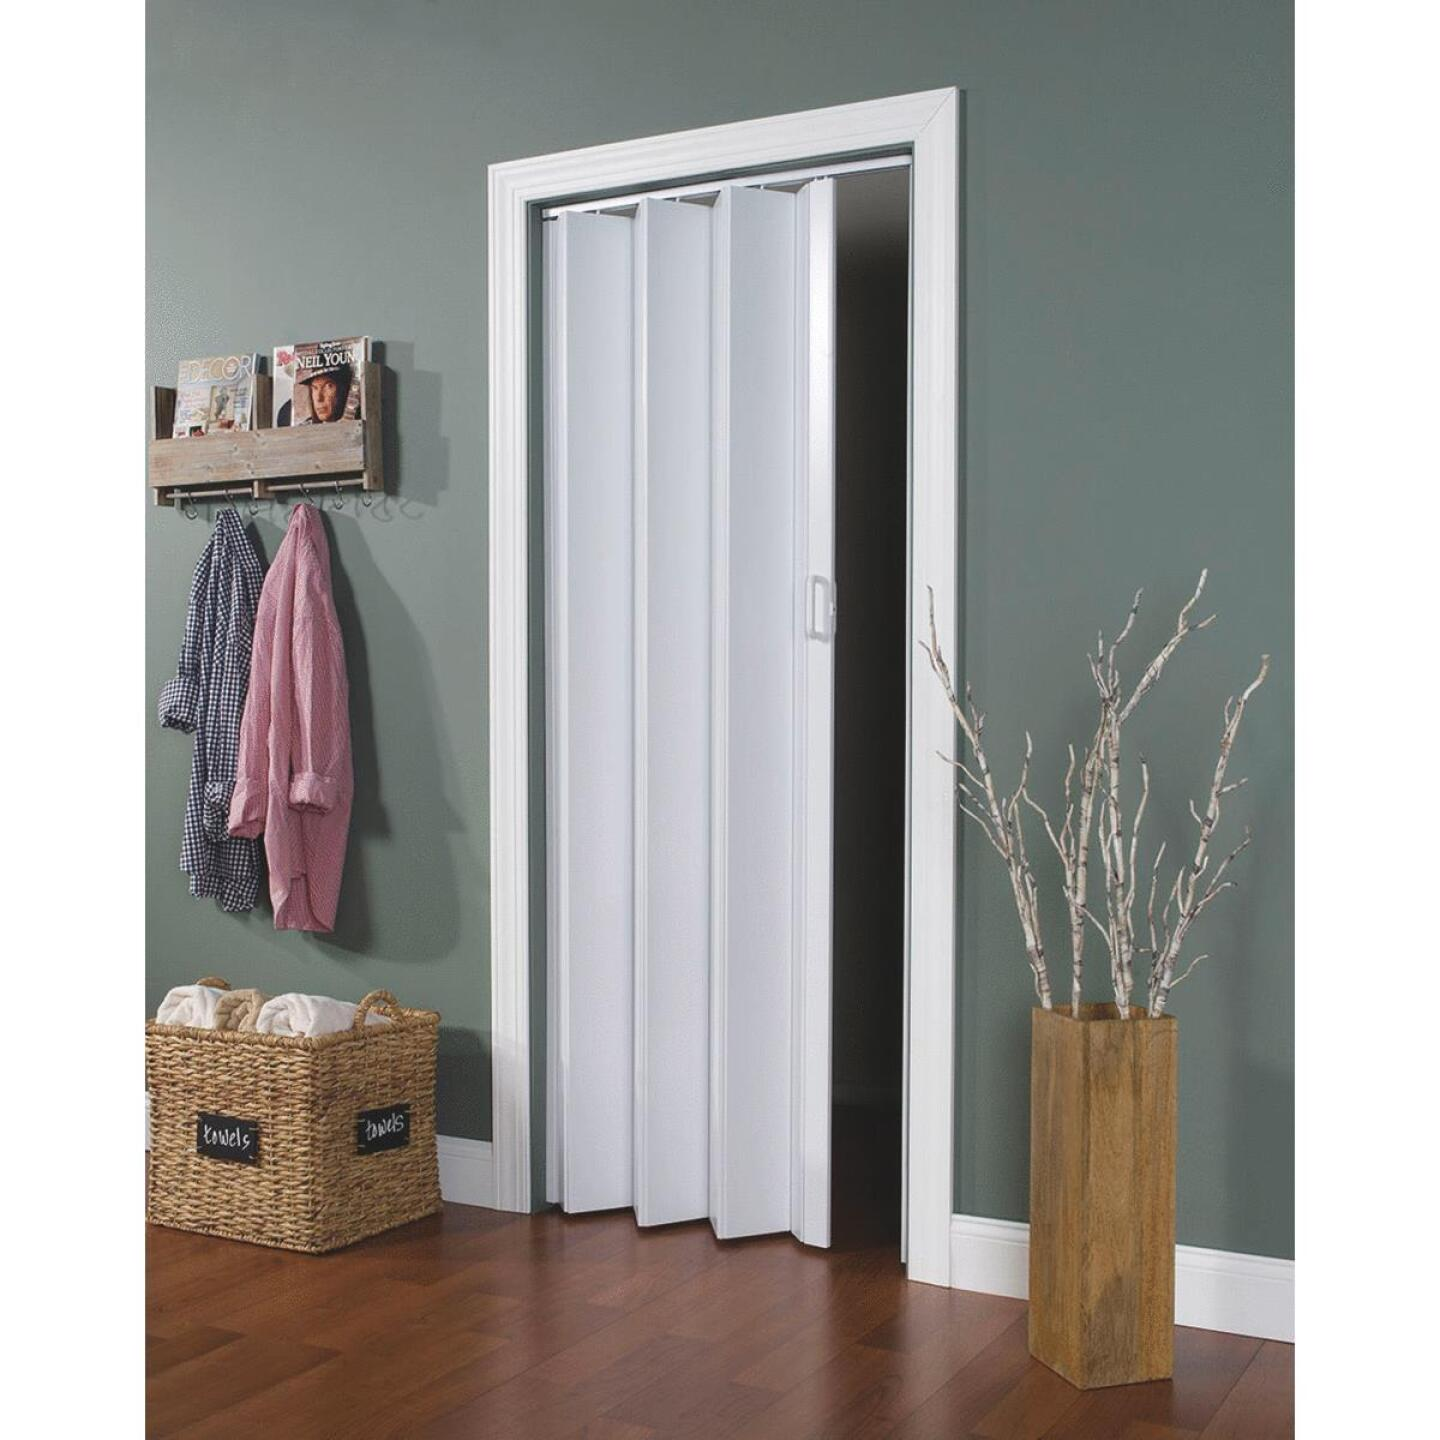 Spectrum Encore 24 In. to 36 In. W. x 80 In. H. White Accordion Folding Door Image 1